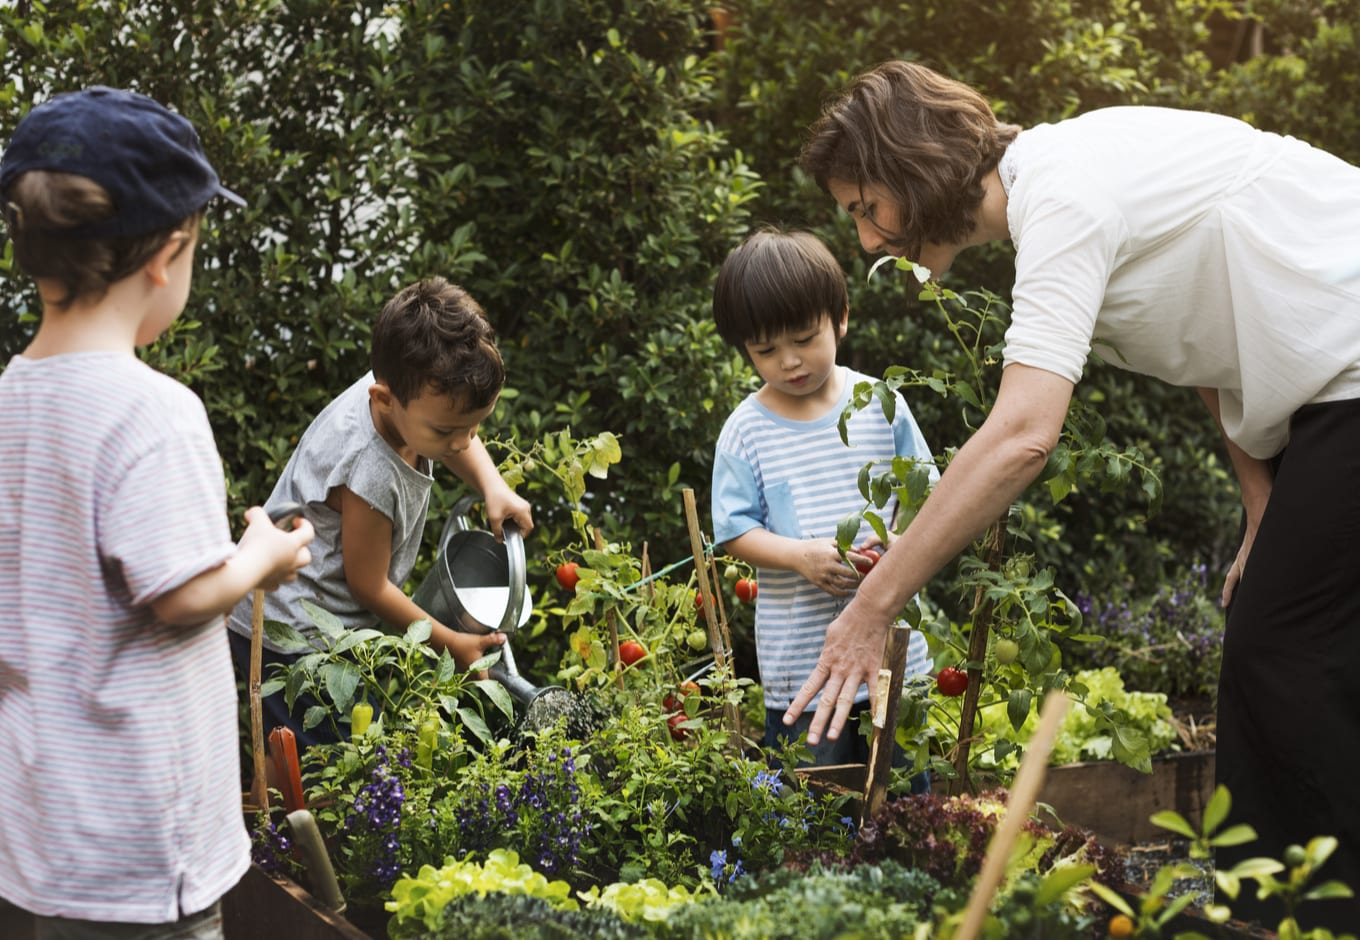 A young teacher at a vegetable garden with three small children.